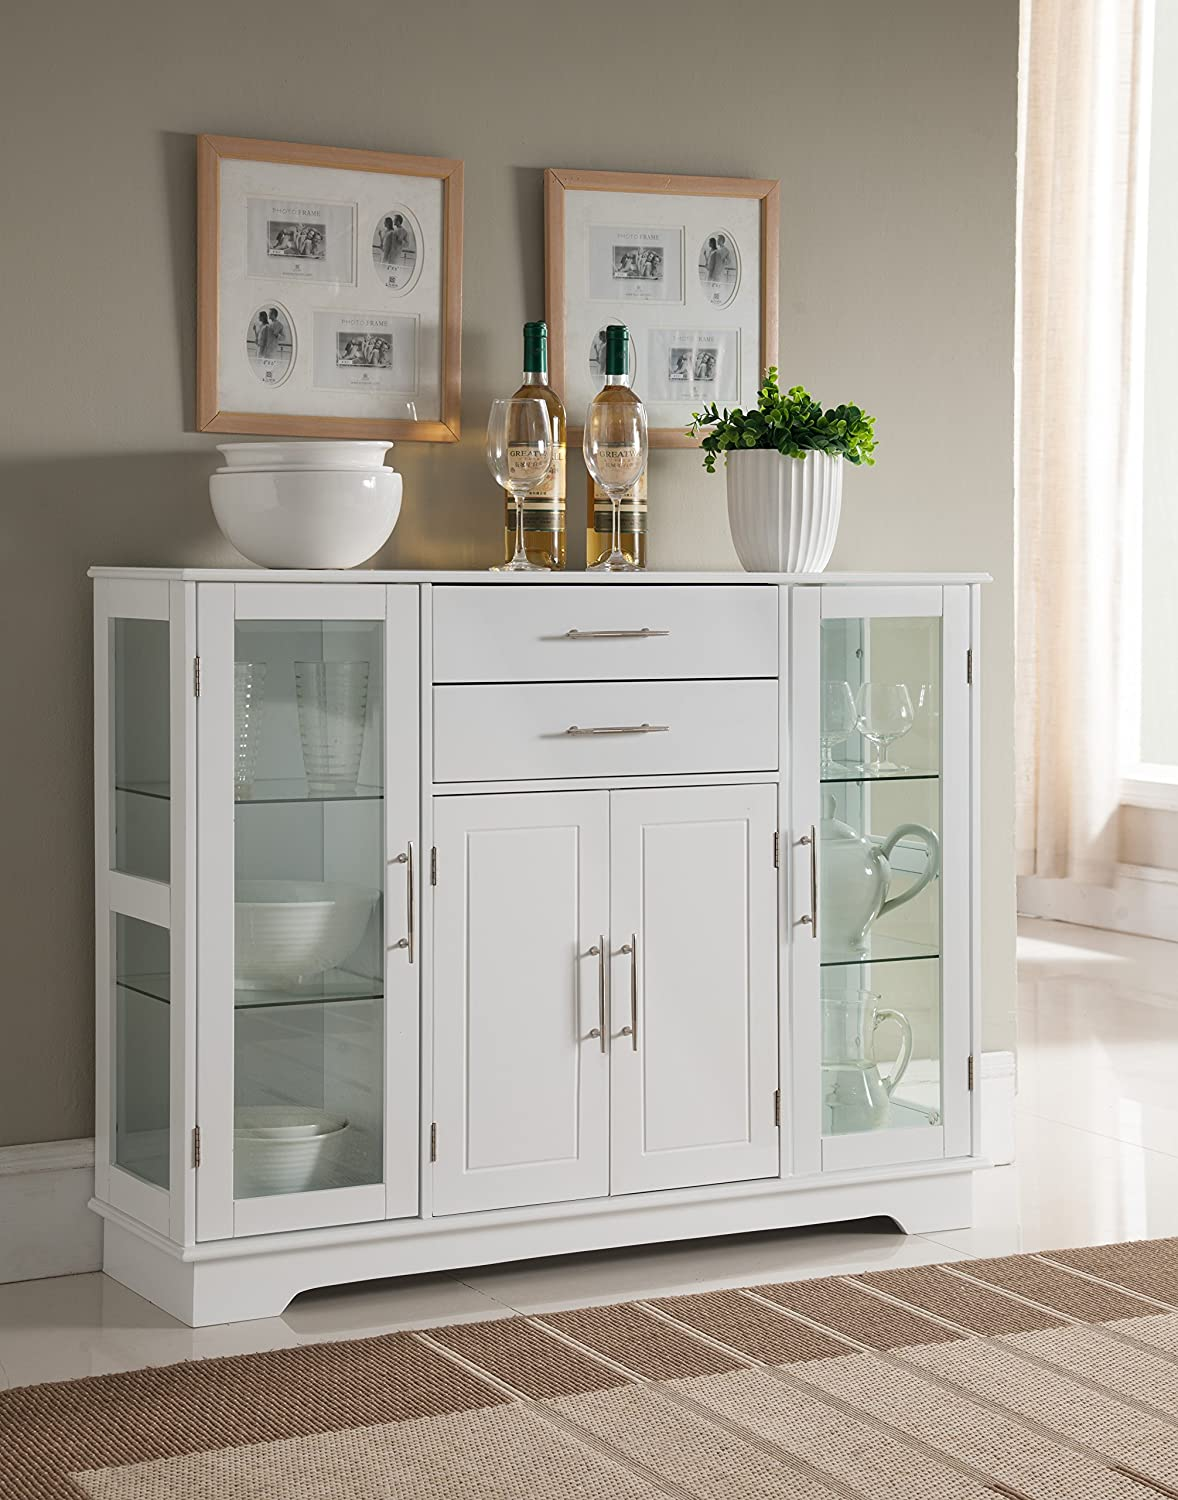 Interior Kitchen Storage Cabinet With Doors amazon com kings brand kitchen storage cabinet buffet with glass doors white buffets sideboards